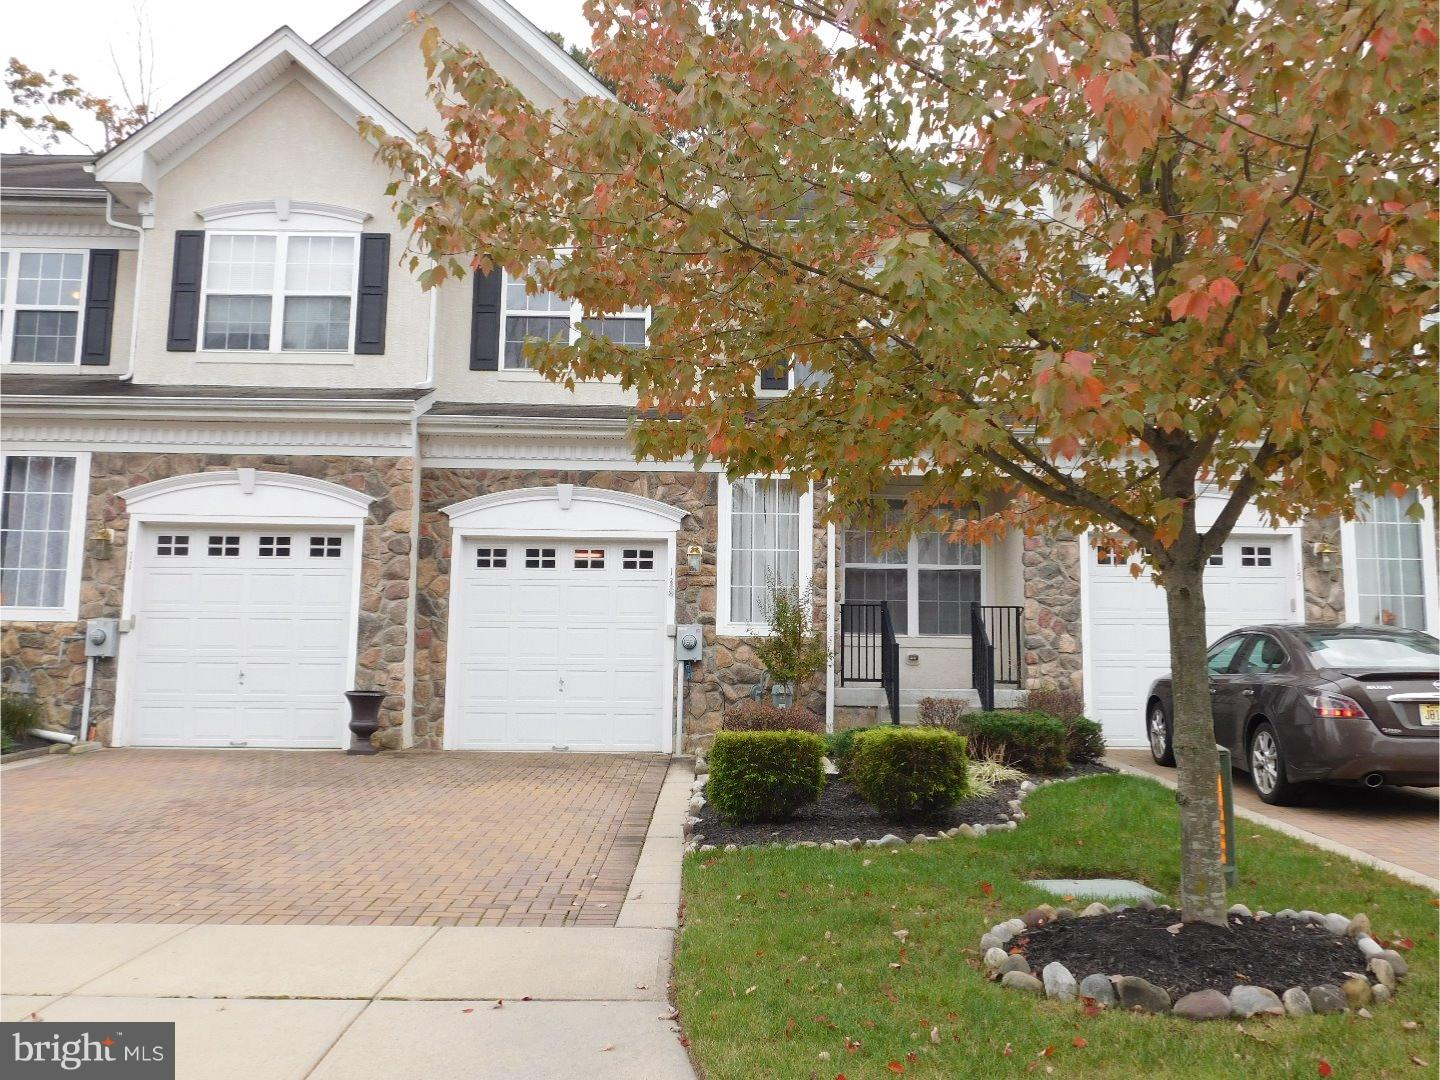 Single Family Home for Sale at 13 YORKSHIRE Lane Westampton, New Jersey 08060 United States